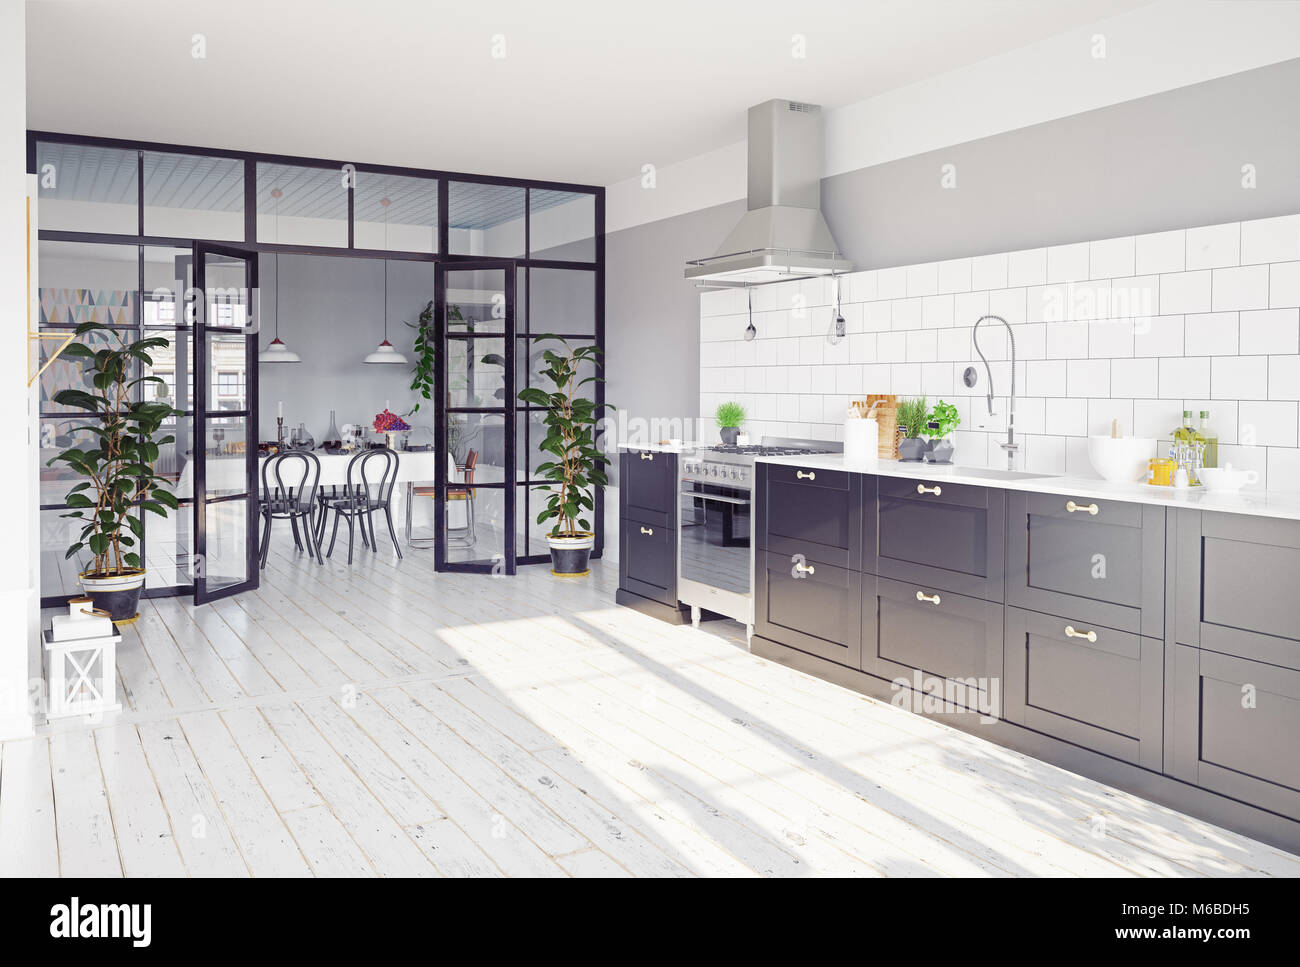 Modern Kitchen Interior With Glass Partition 3d Rendering Concept Stock Photo Alamy